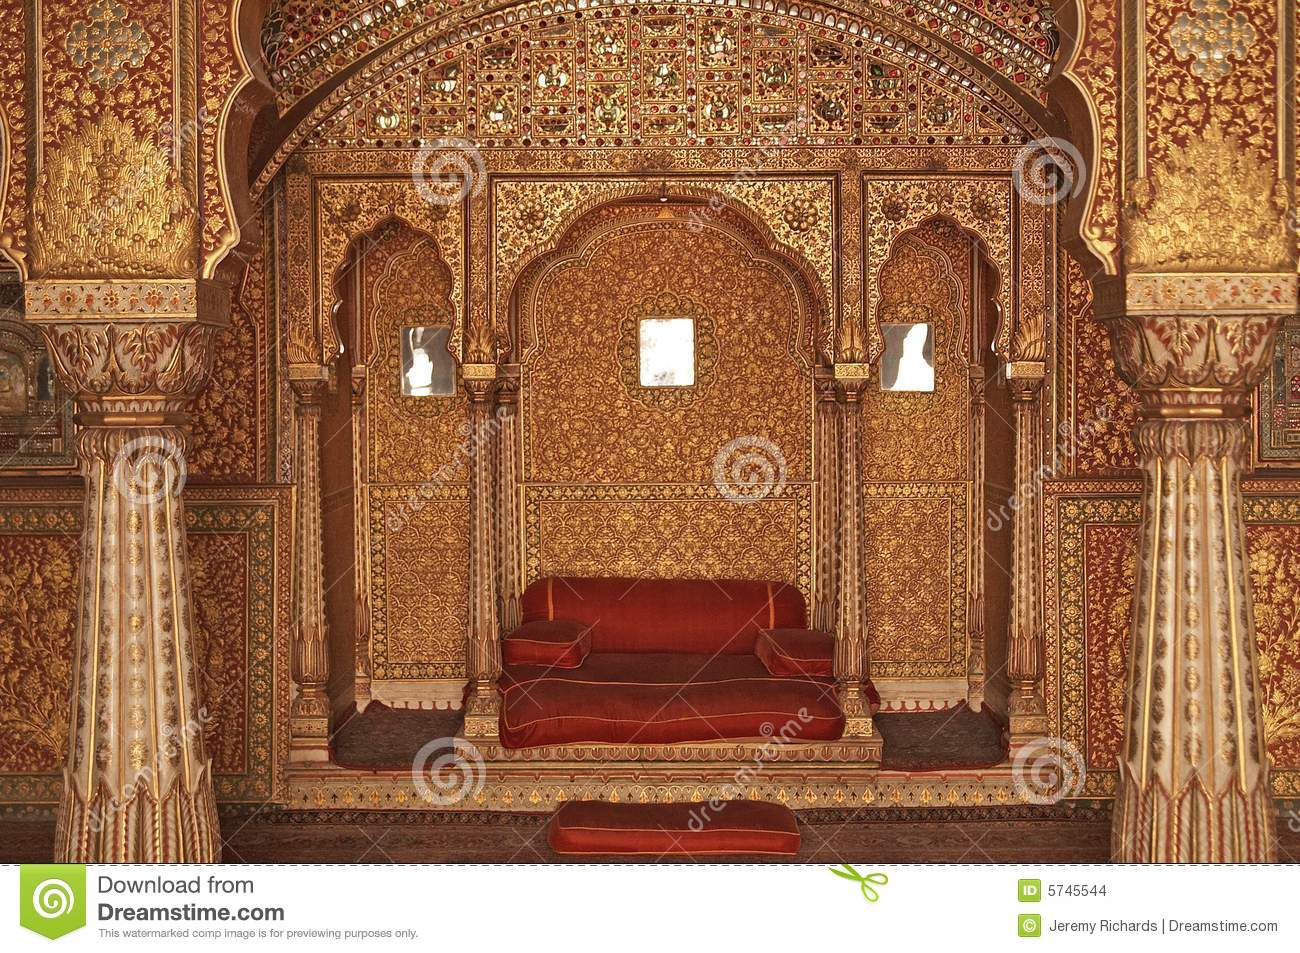 Download Home To A King Stock Photo Image Of Inlaid Asia Indian